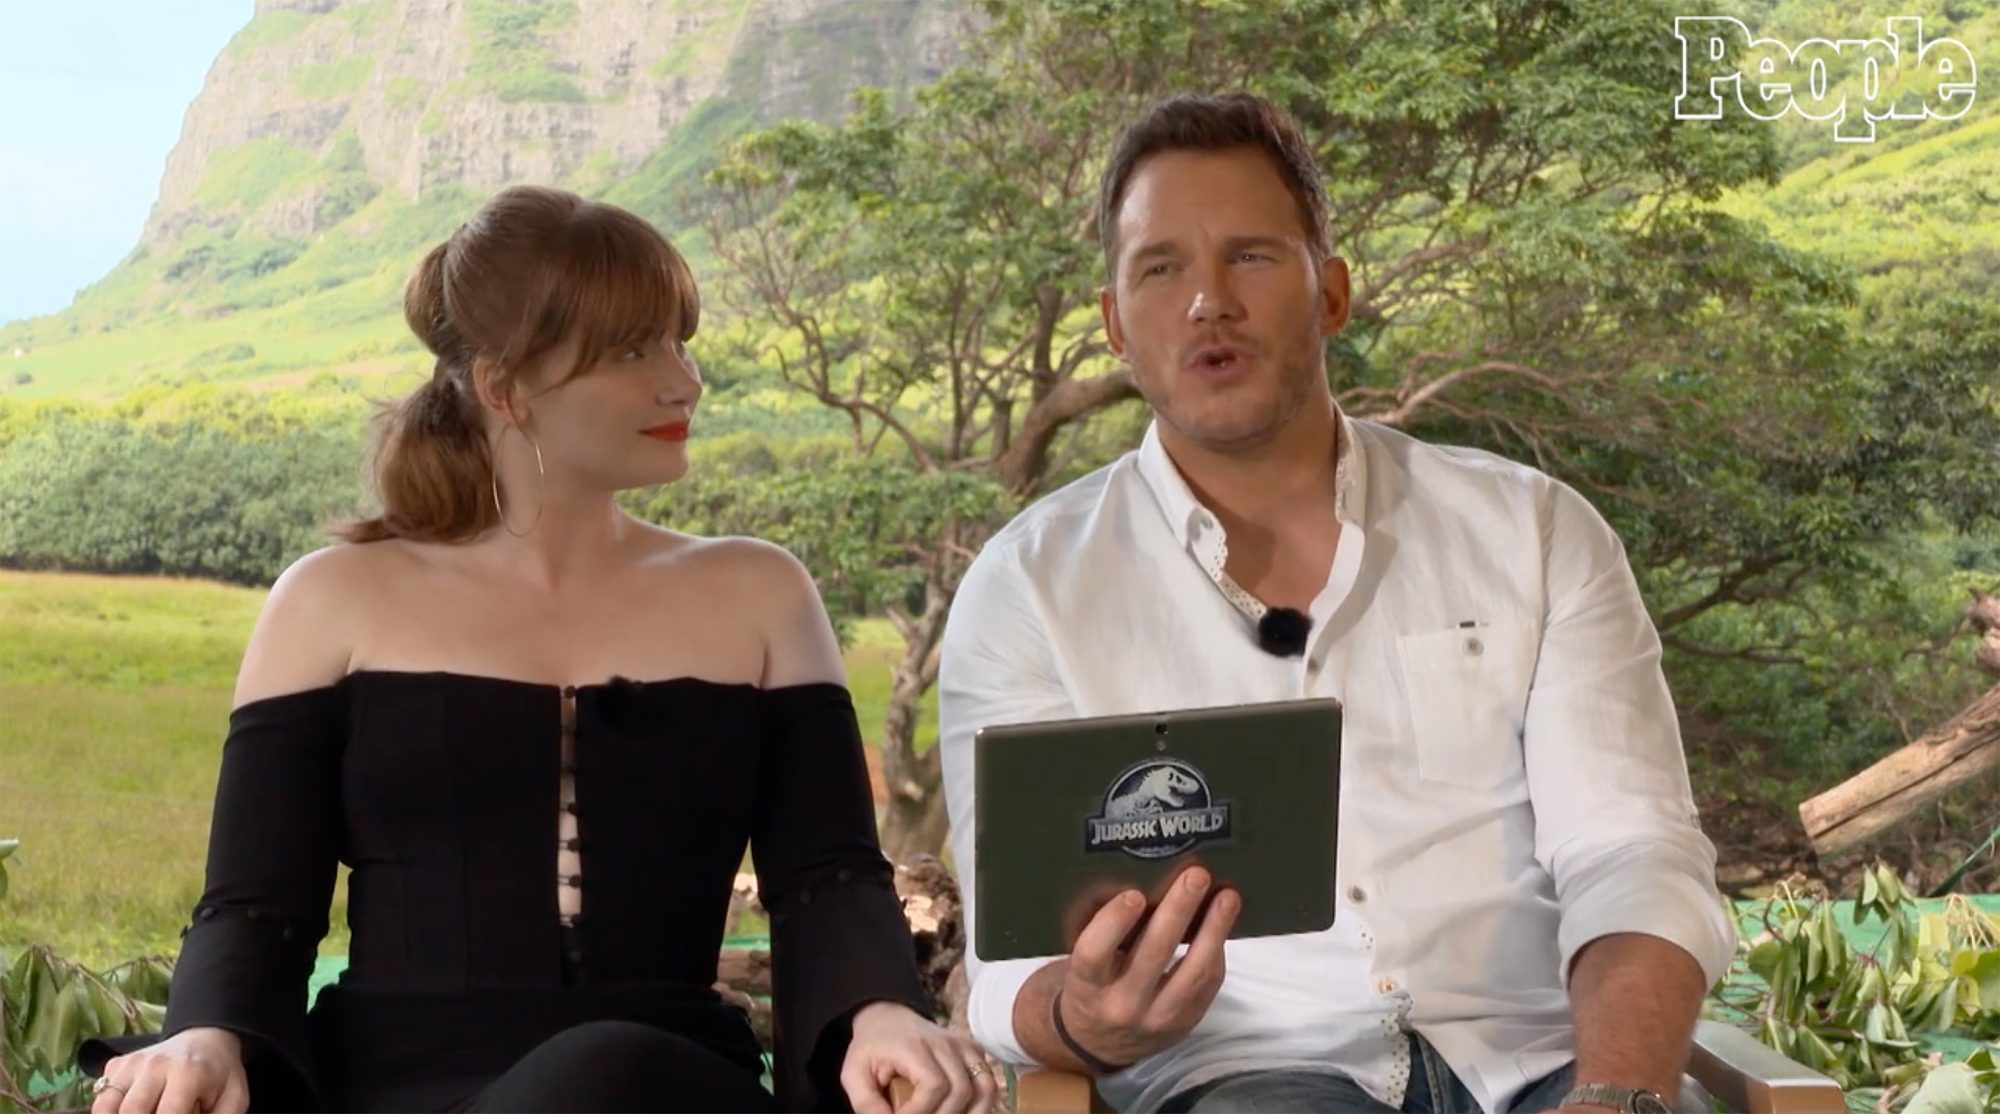 Chris Pratt and Bryce Dallas Howard Kid Questions Jurassic World